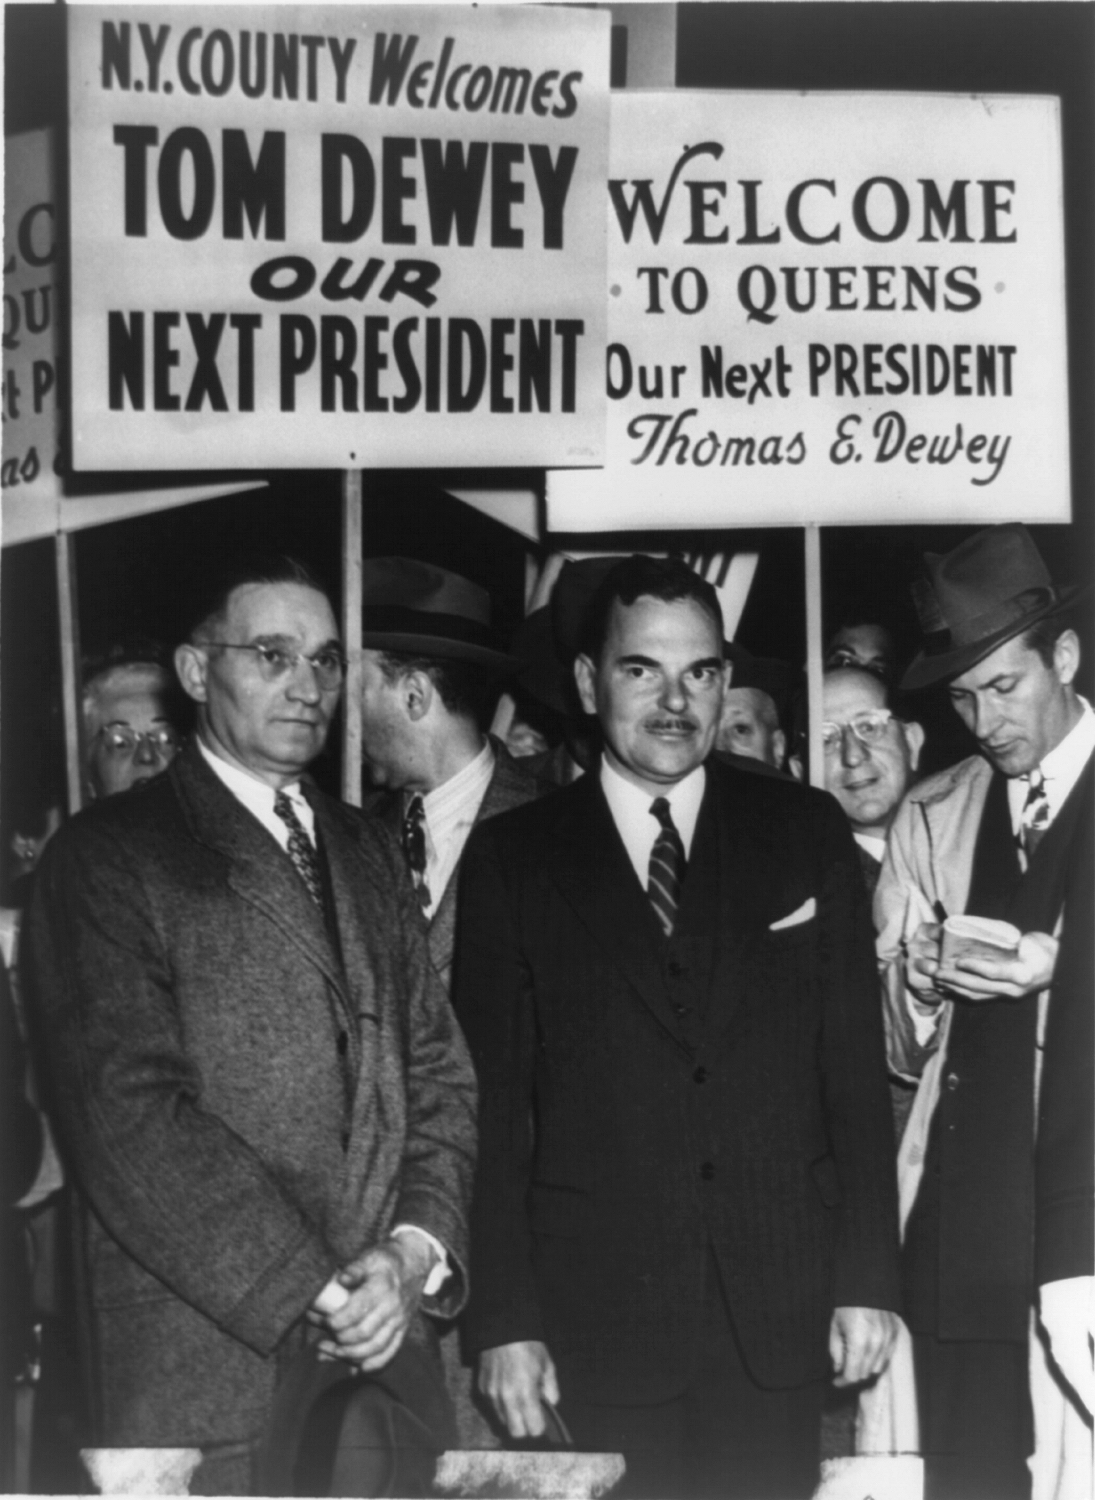 Candidates welcome Thomas E. Dewey with Thomas J. Curran, Manhattan GOP leader, during a campaign tour stop in New York City, 1948.